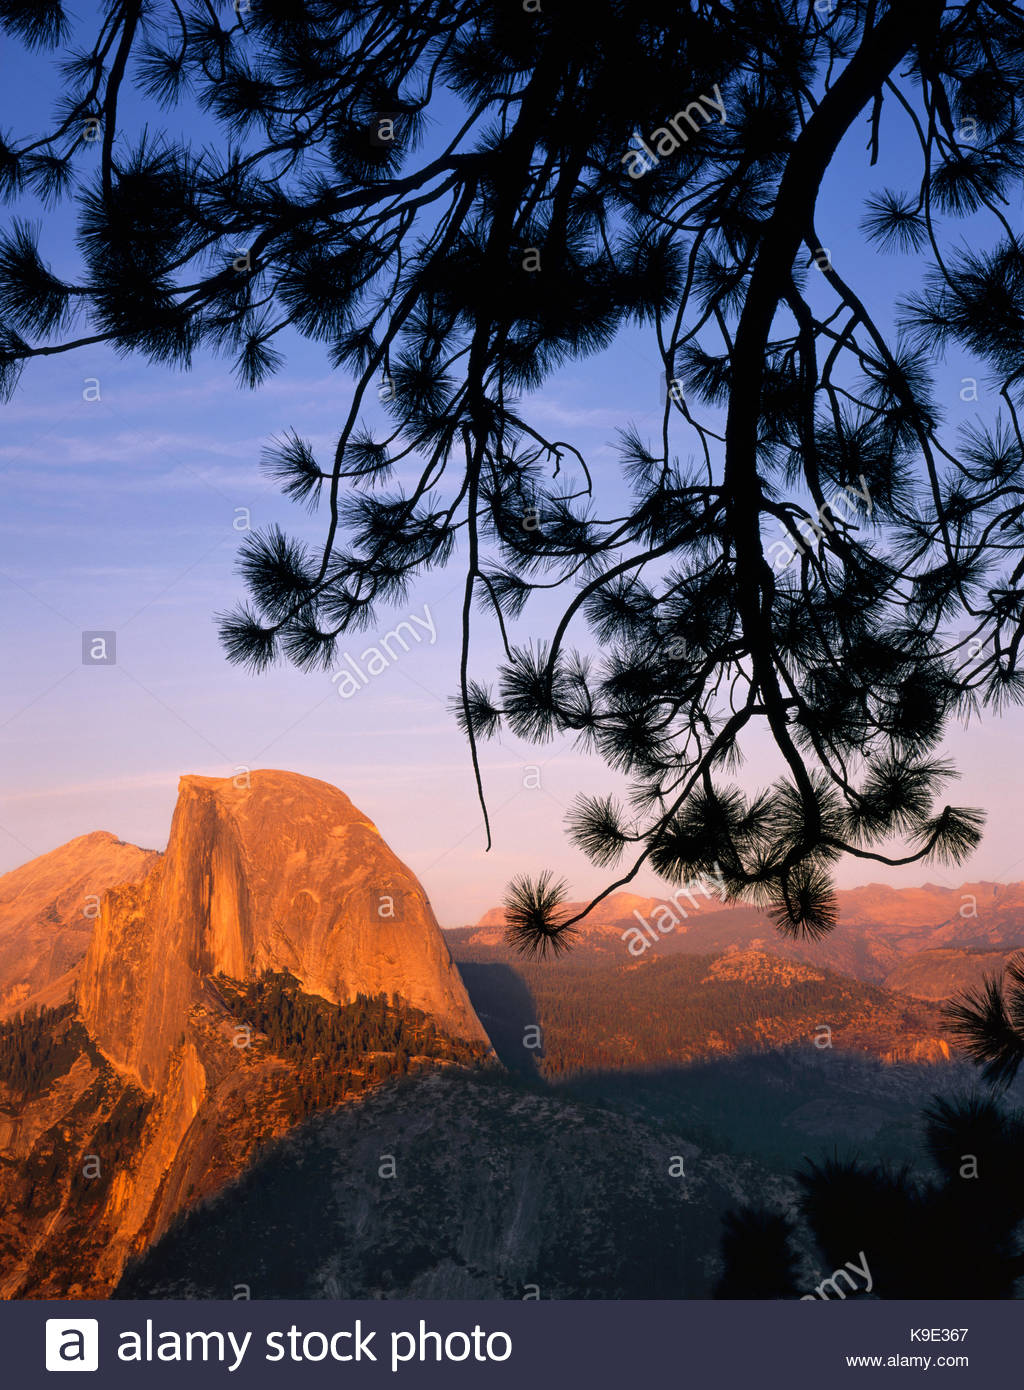 Half Dome and Jeffrey Pine from Glacier Point, Yosemite National Park, California Stock Photo